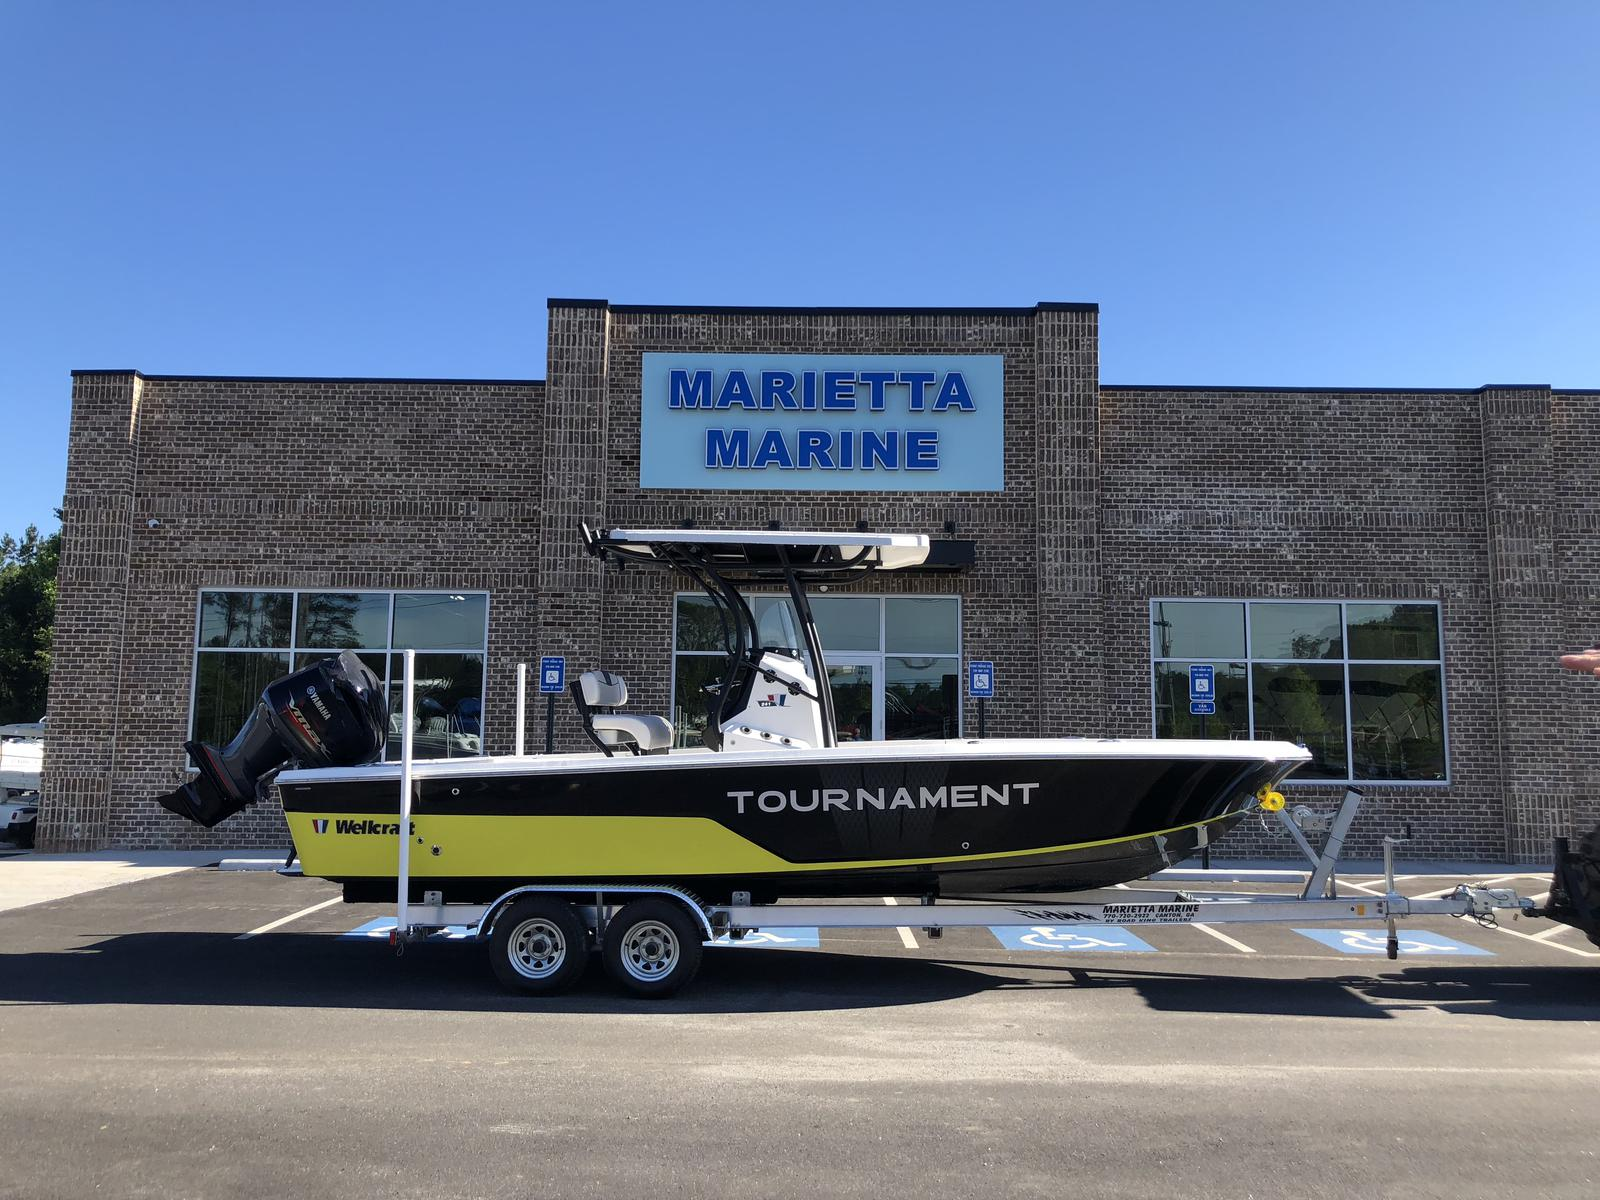 Inventory from Weeres and Wellcraft Marietta Marine Acworth